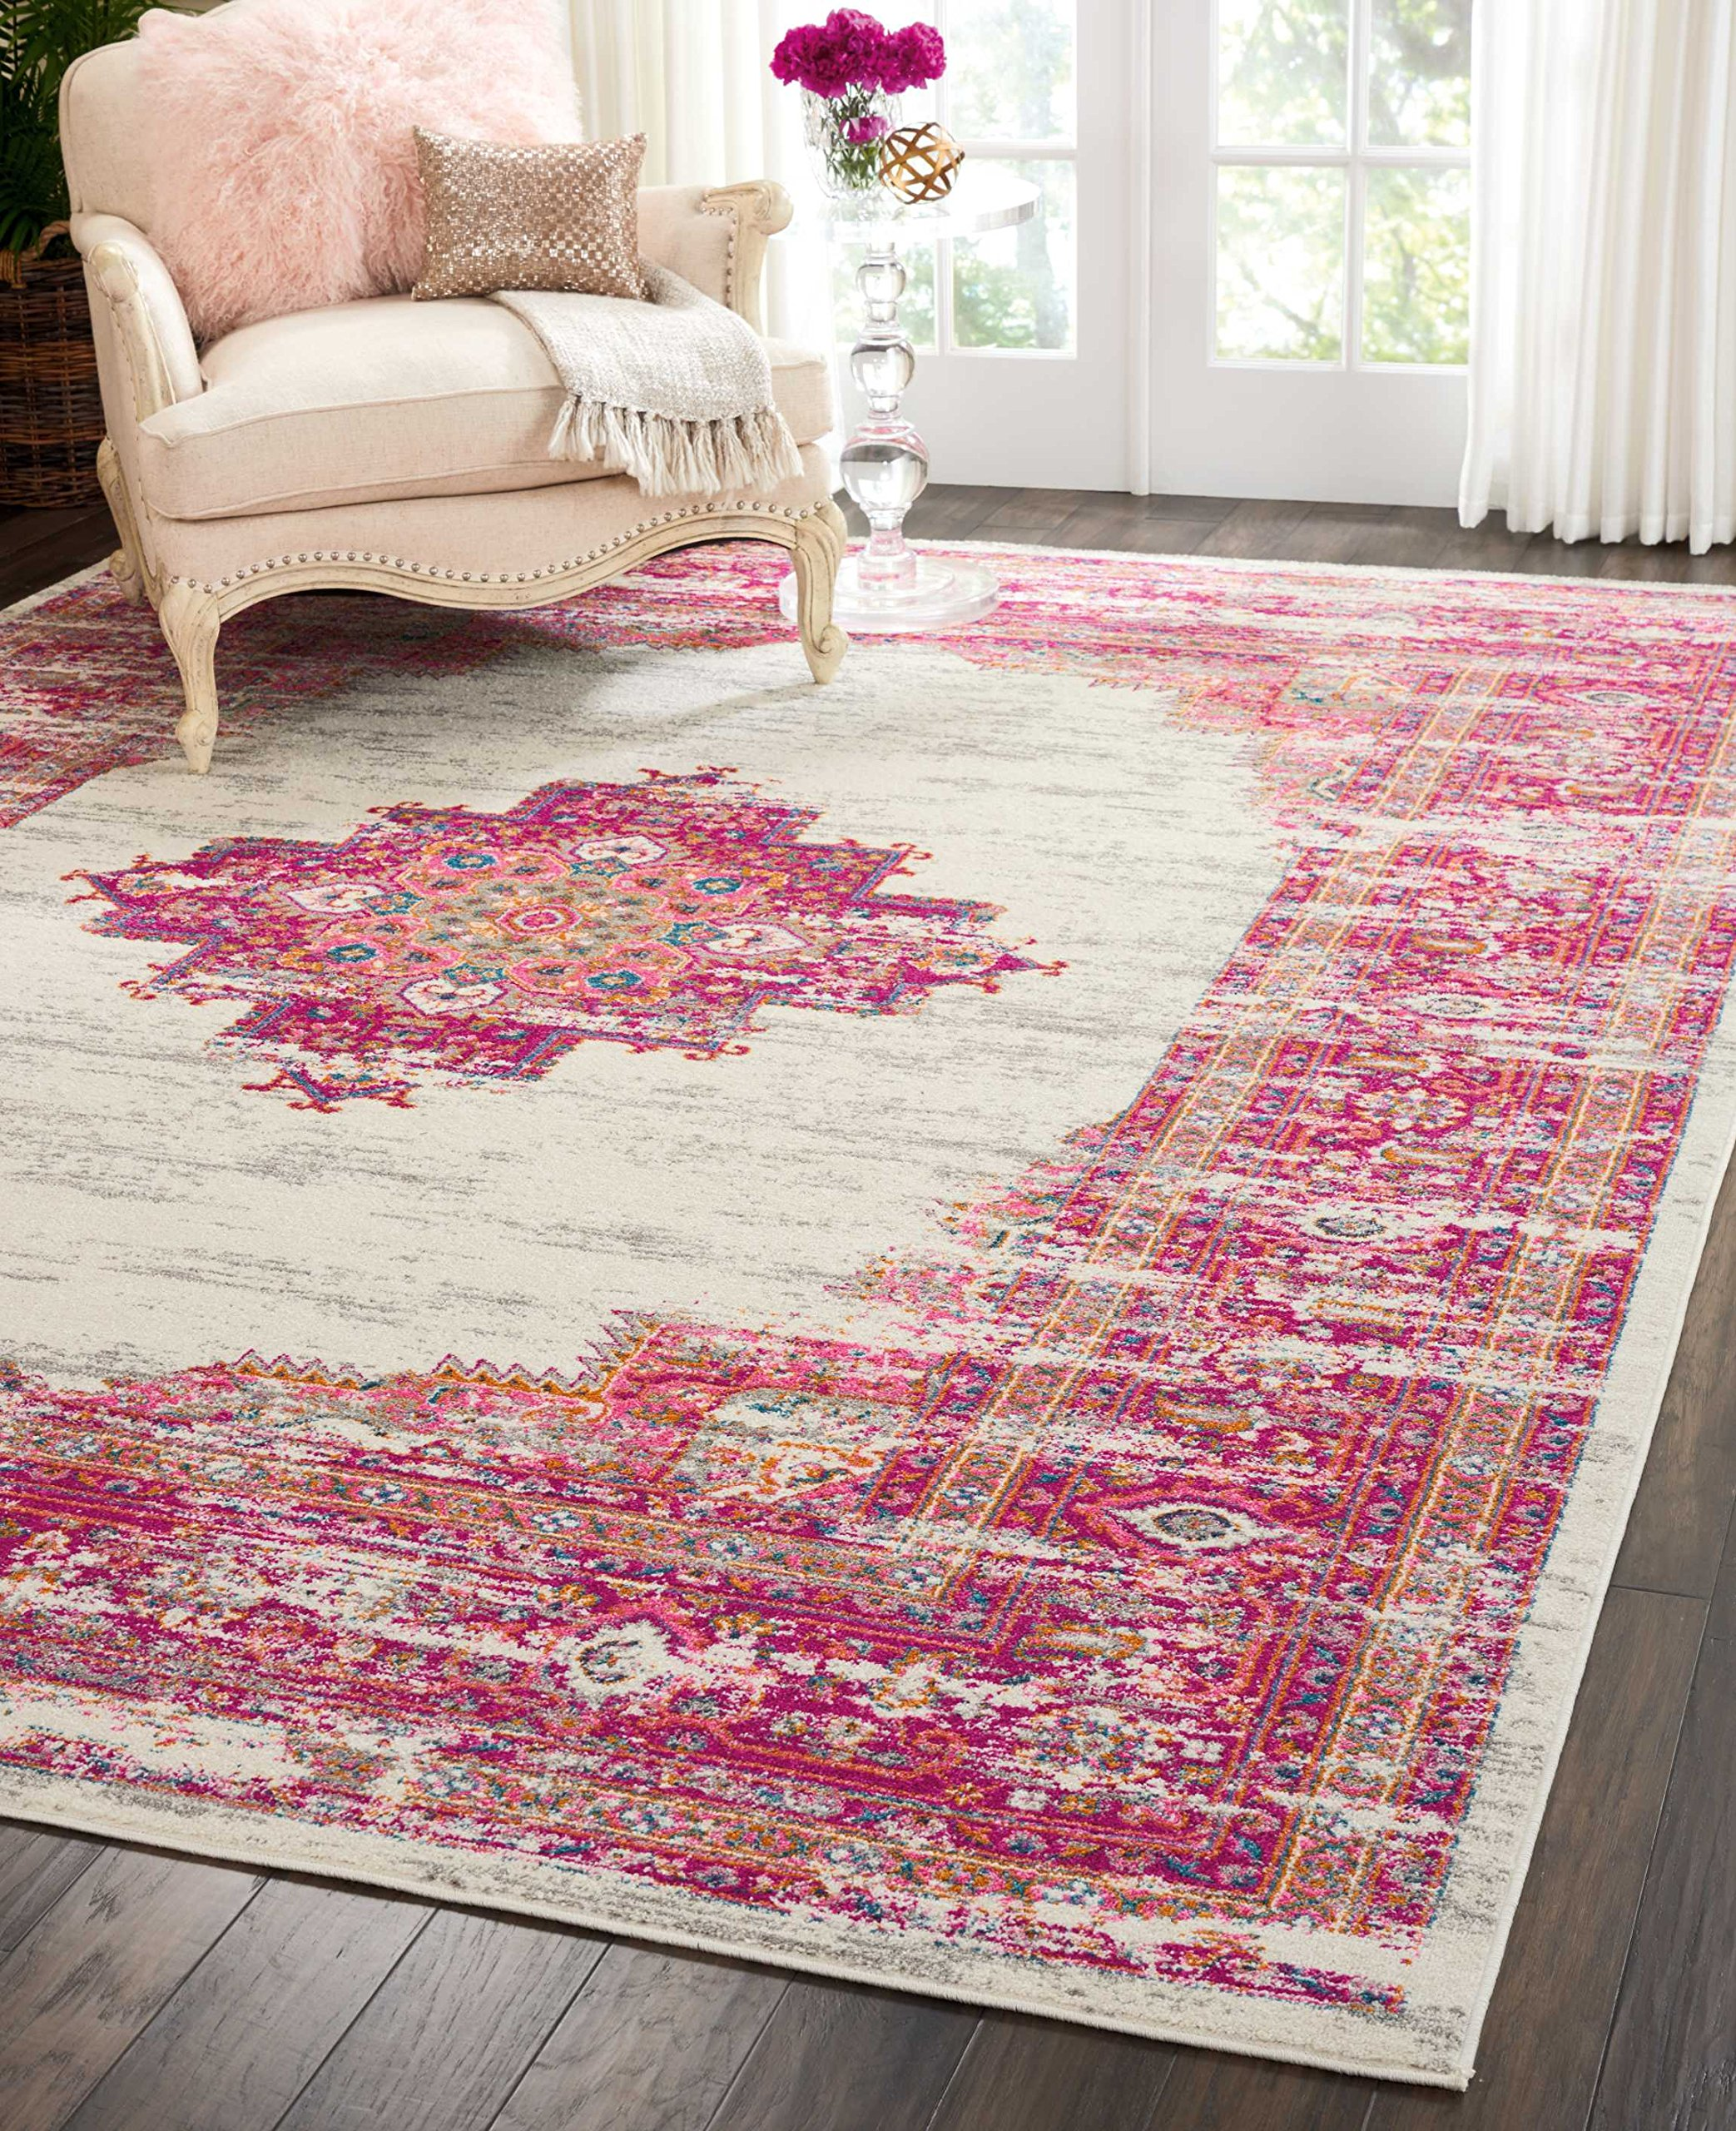 "Nourison Passion Traditional Bright Colorful Area Rug, 6'7""X9'6"", IVORY/FUSHIA - Spice up the décor in your home with Nourison. This rug is perfect for any room. Feel free to lay ontop of hard floors or carpet areas. This rug is stain resistant, fade resistant, no shedding, and easy to clean Styles: Contemporary Rugs, Bohemian - living-room-soft-furnishings, living-room, area-rugs - A1Wv%2BvWFoAL -"